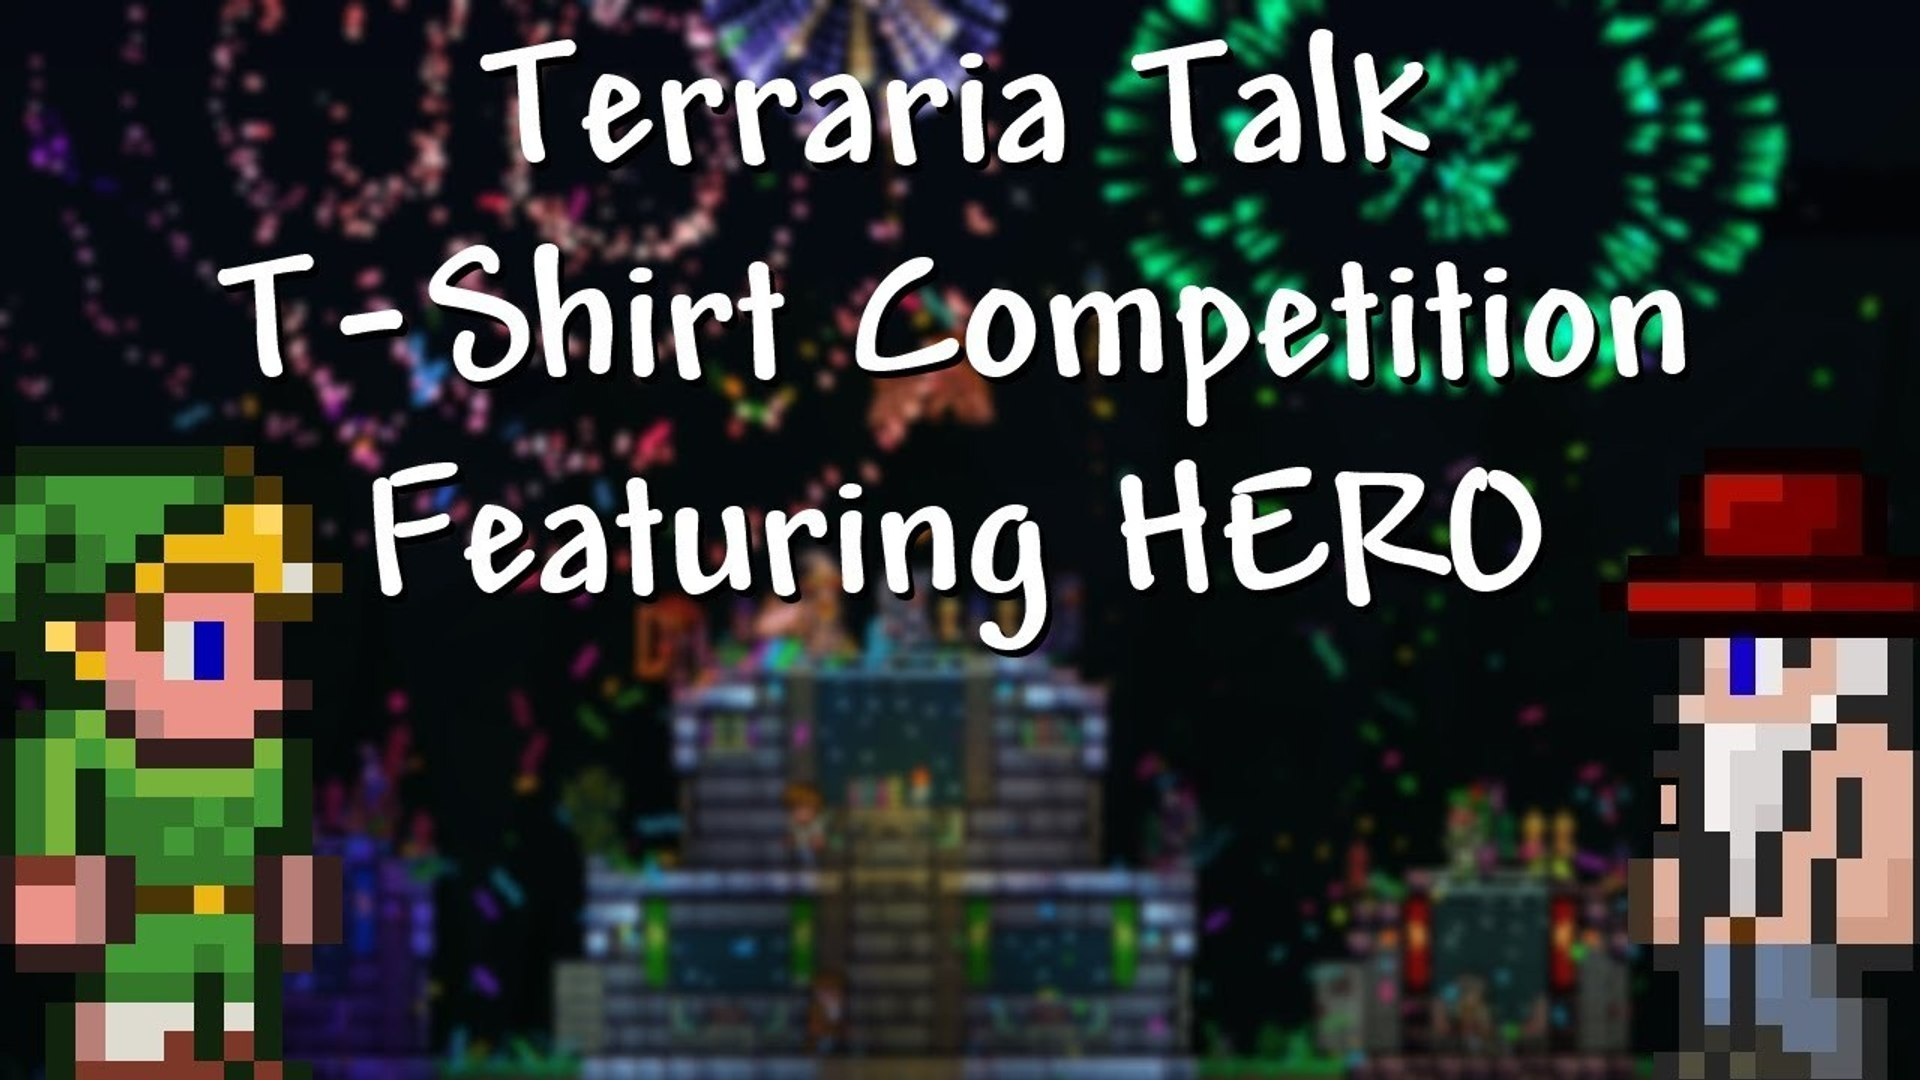 Terraria Talk - T-Shirt Competition - Featuring HERO